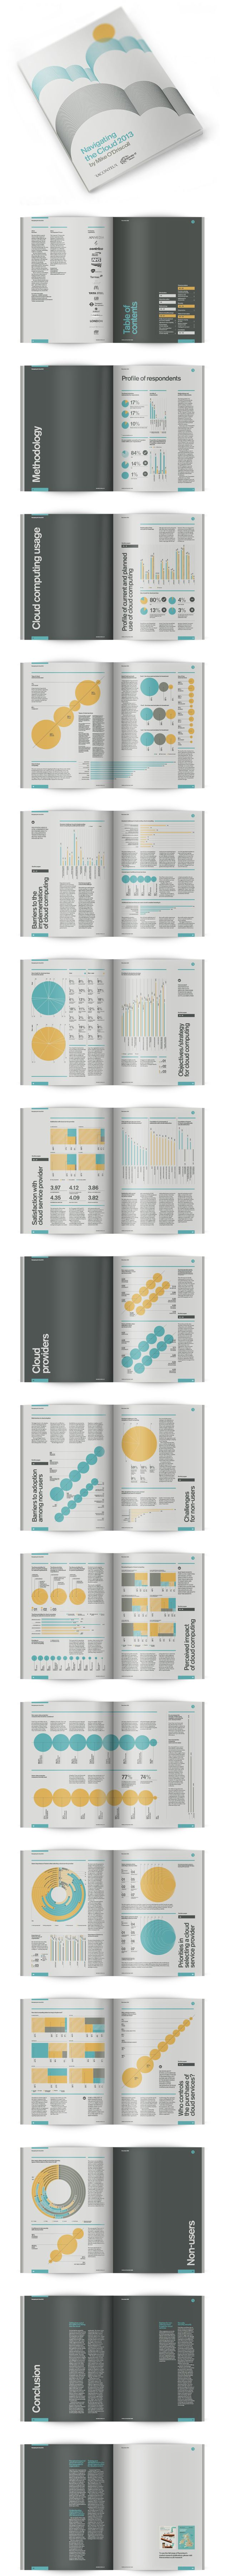 Infographic Survey Navigating the Cloud on Behance